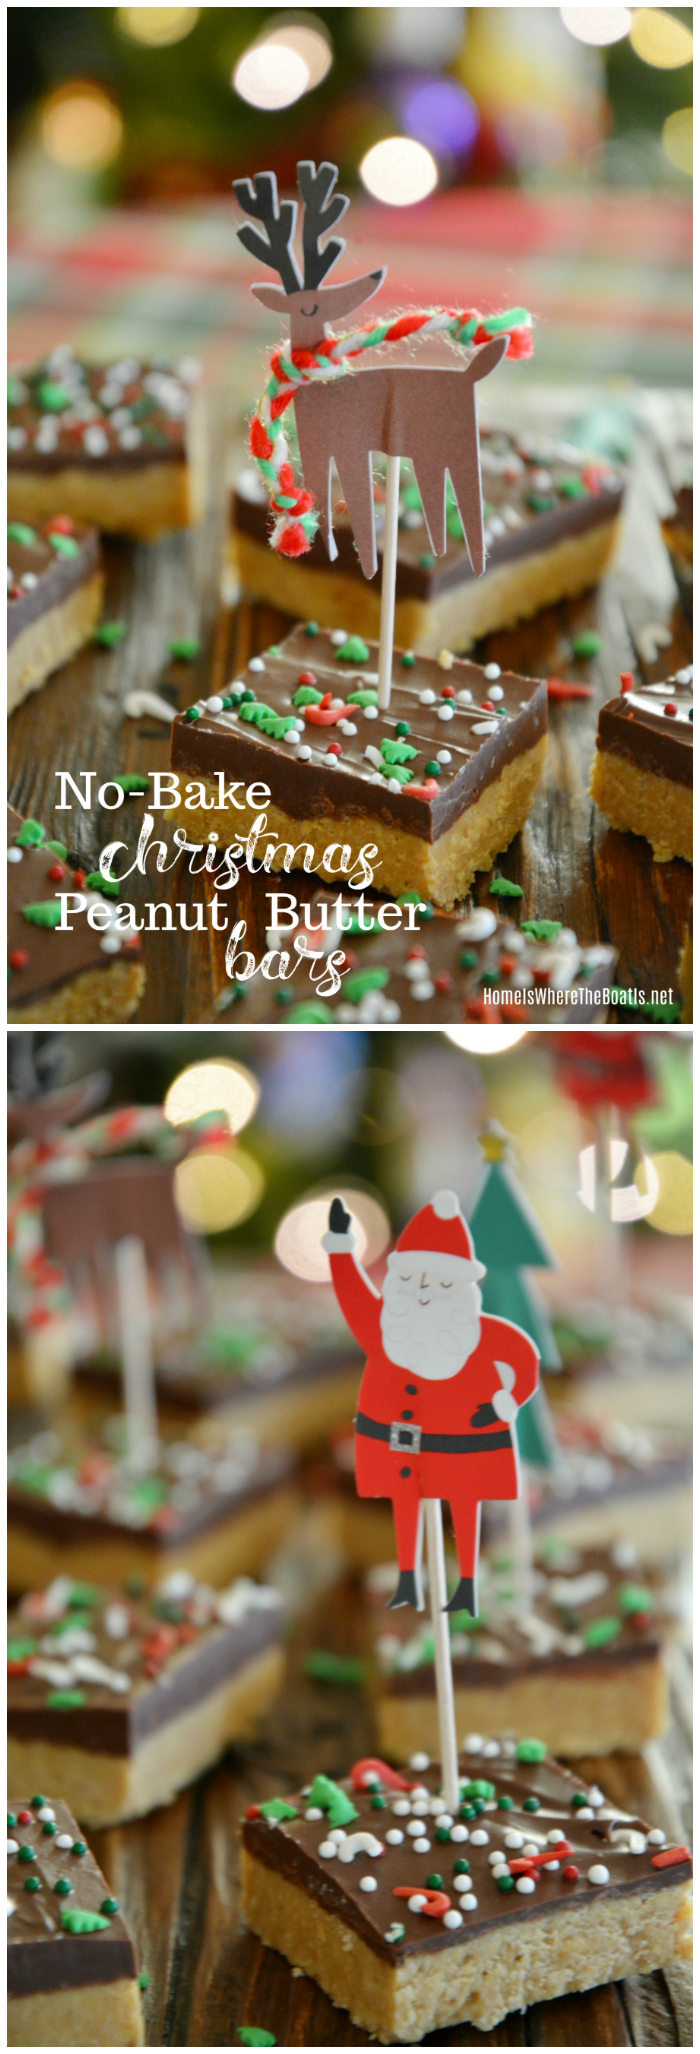 An Easy No-Bake Treat: Christmas Peanut Butter Bars! These bars come together in about 10 minutes plus an hour of refrigeration time to allow them to set. . .perfect for gift giving or to enjoy with your family for the holidays! | ©homeiswheretheboatis.net #Christmas #bars #nobake #easy #recipes #chocolate #peanutbutter